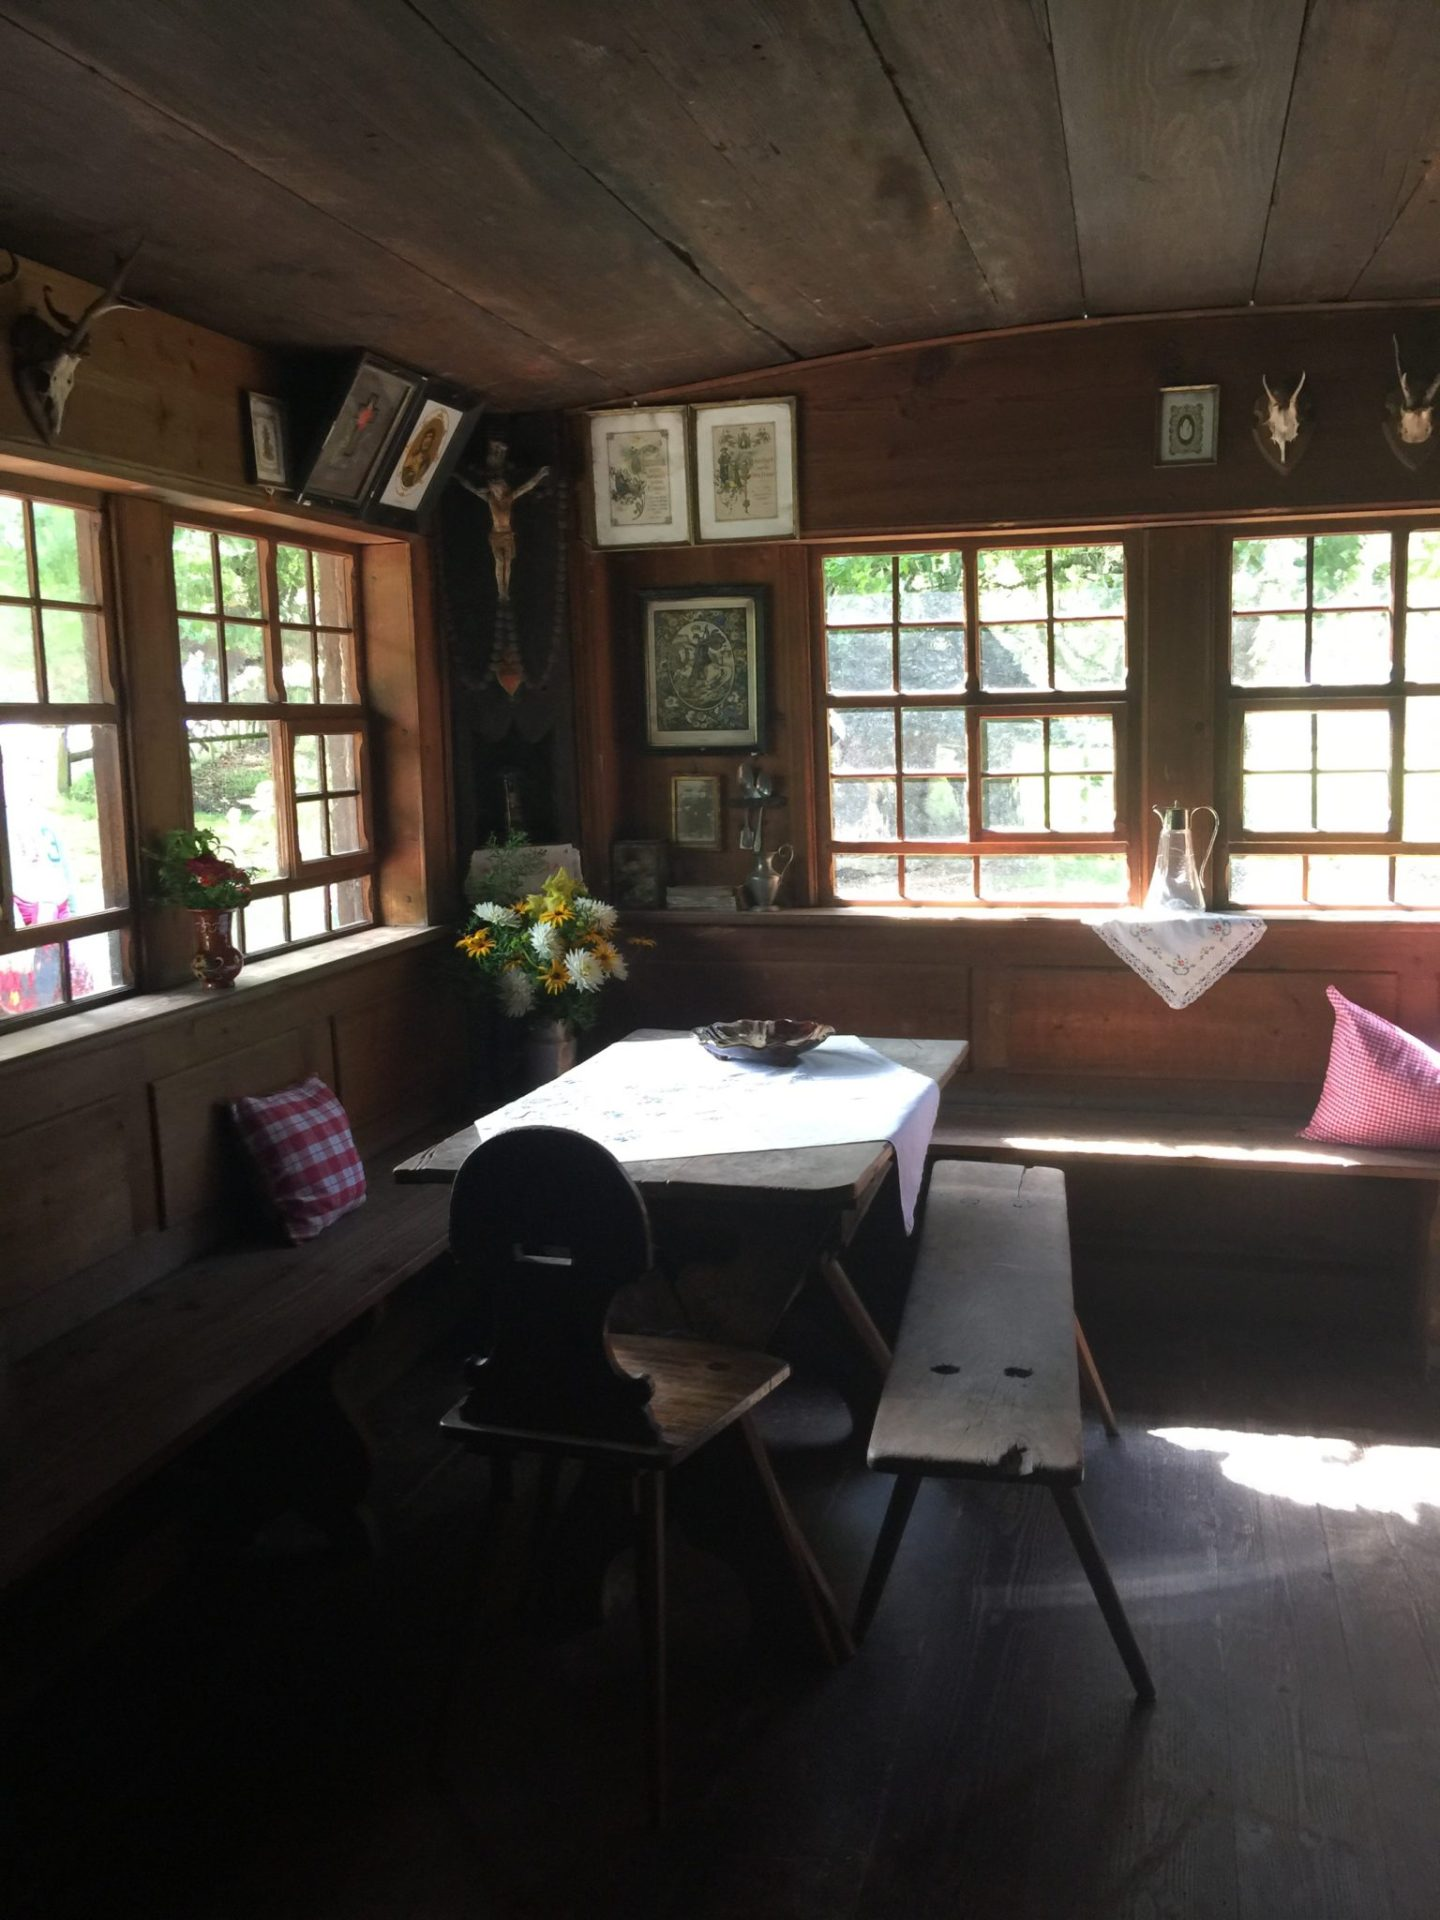 The dining room of the oldest farmhouse at the Black Forest Open-Air Museum